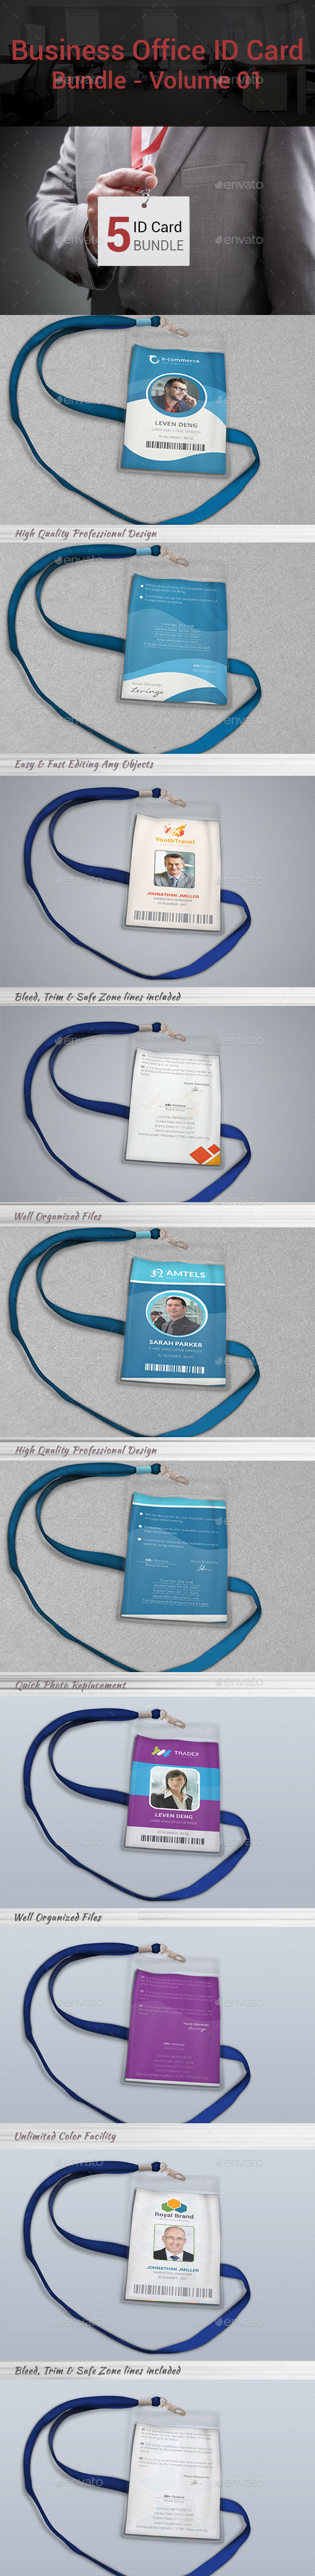 Business Office ID Card Bundle | Volume 01 - Miscellaneous Print Templates